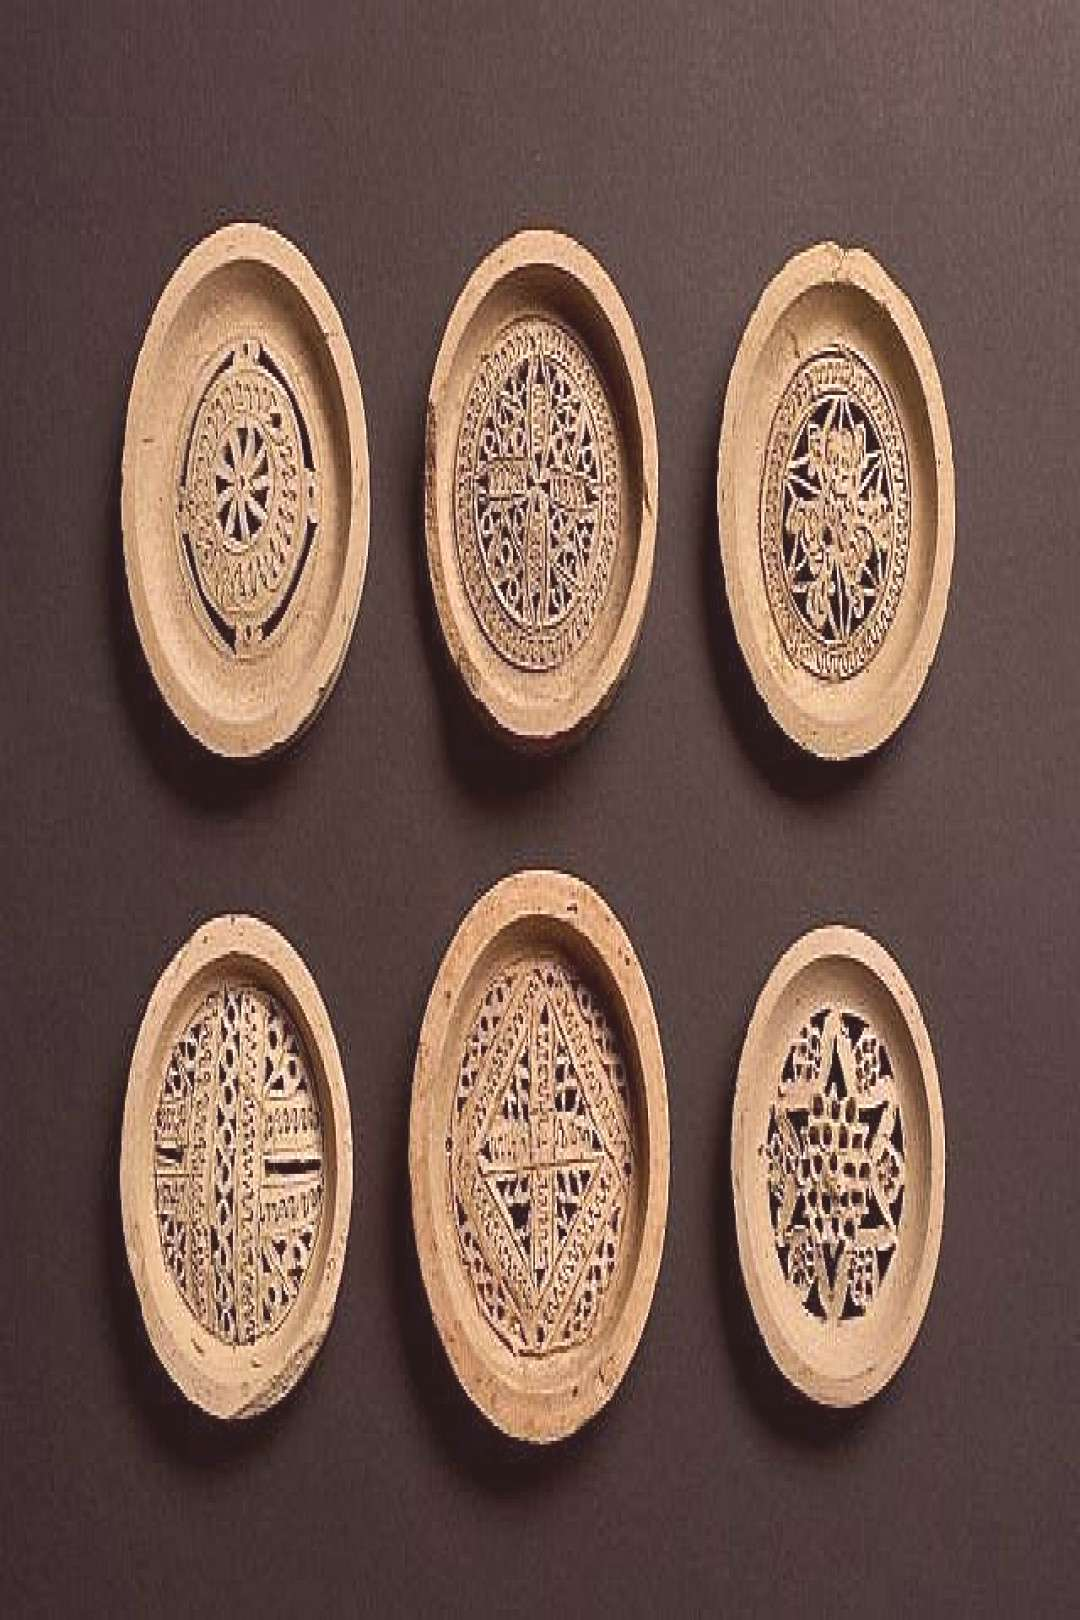 A COLLECTION OF ISLAMIC TERRACOTTA FILTERS, EGYPT, 10TH-12TH CENTURY Provenance Collection Maur ..